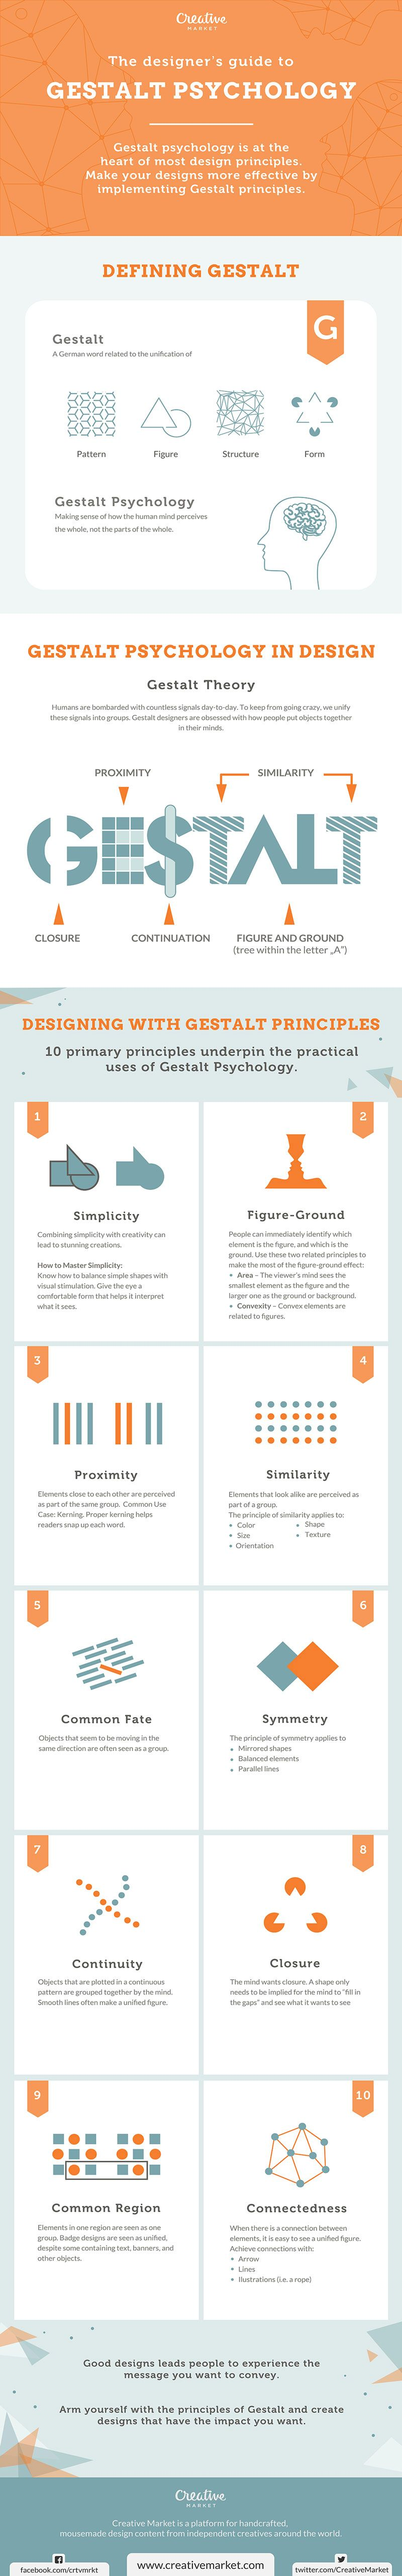 Web Design Psychology 10 Design Principles To Follow Infographic Graphic Design Tips Design Theory Graphic Design